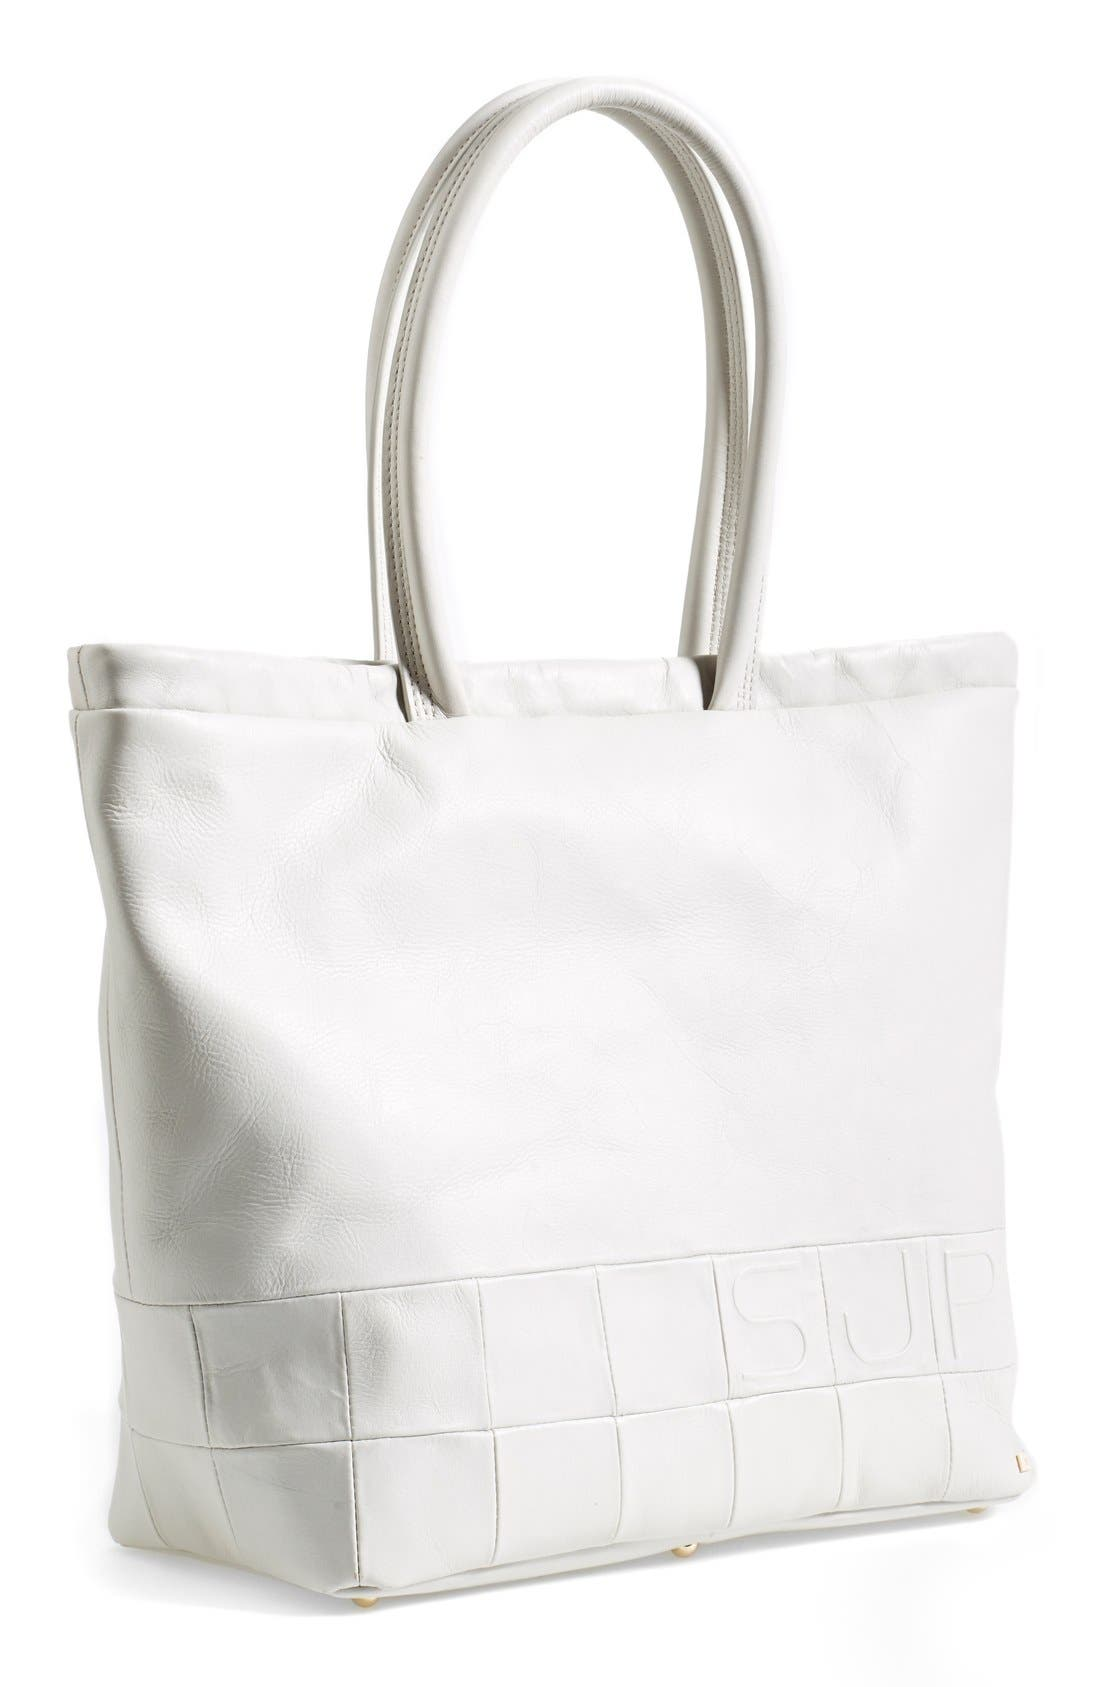 Alternate Image 1 Selected - SJP 'Greenwich' Leather Tote